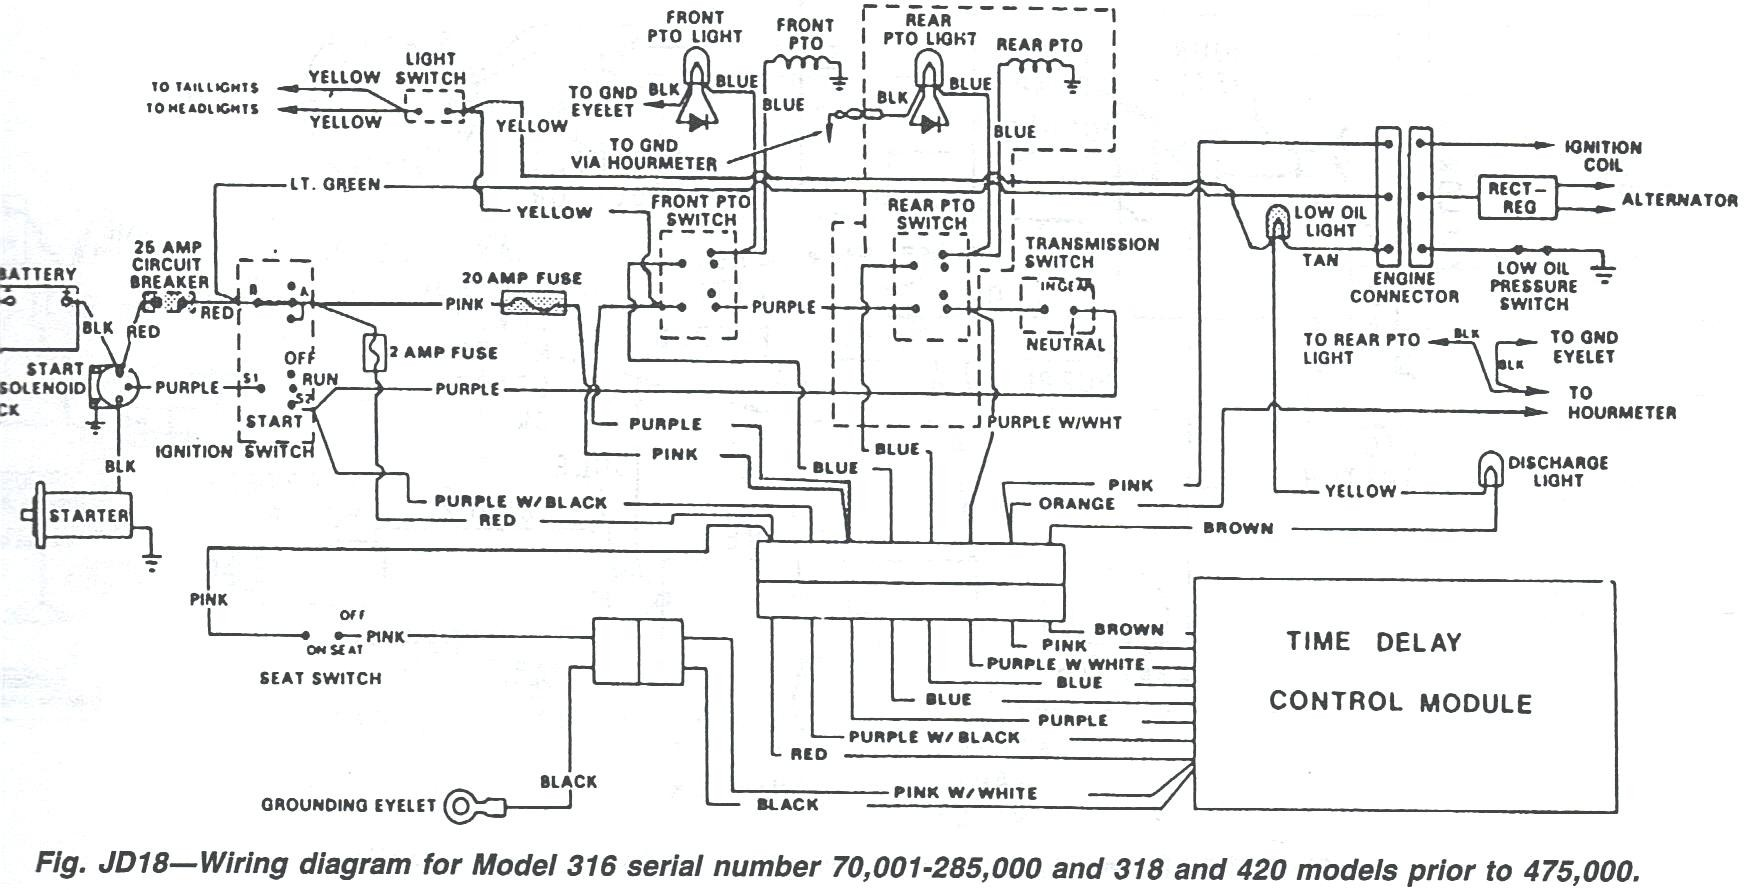 Full Size of John Deere Lawn Tractor Lt155 Wiring Diagram 1 Archived Wiring Diagram Category